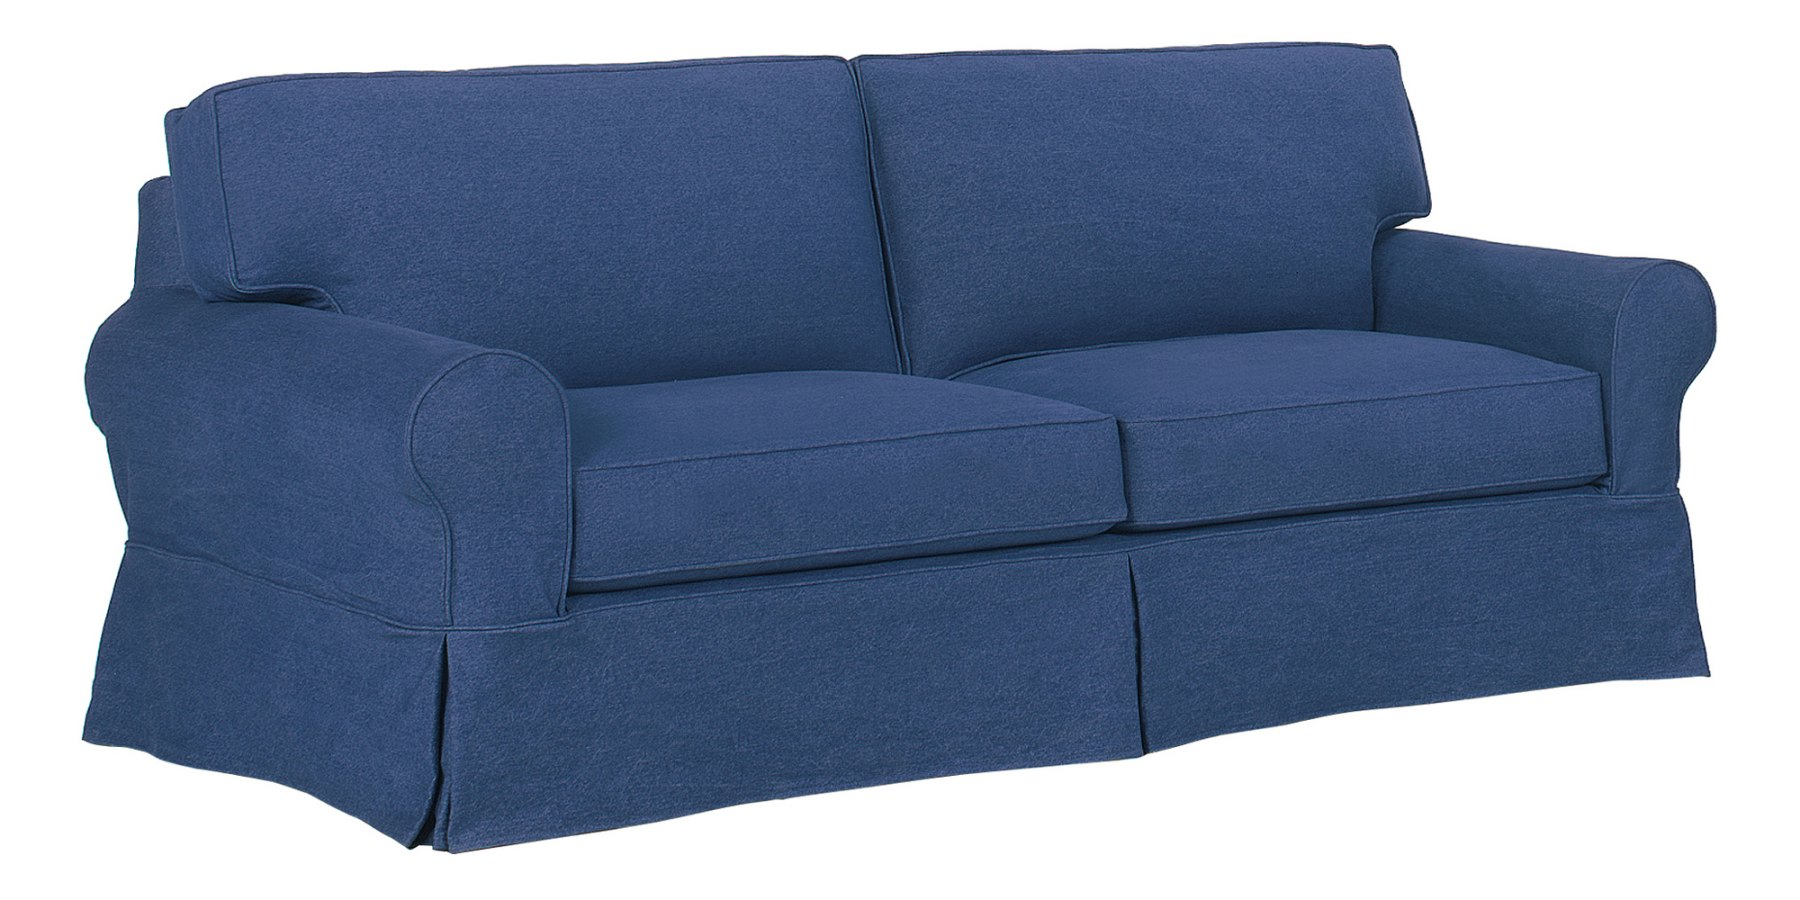 Denim sofa slipcovers sure fit designer denim furniture slipcover bed bath beyond thesofa Denim loveseat